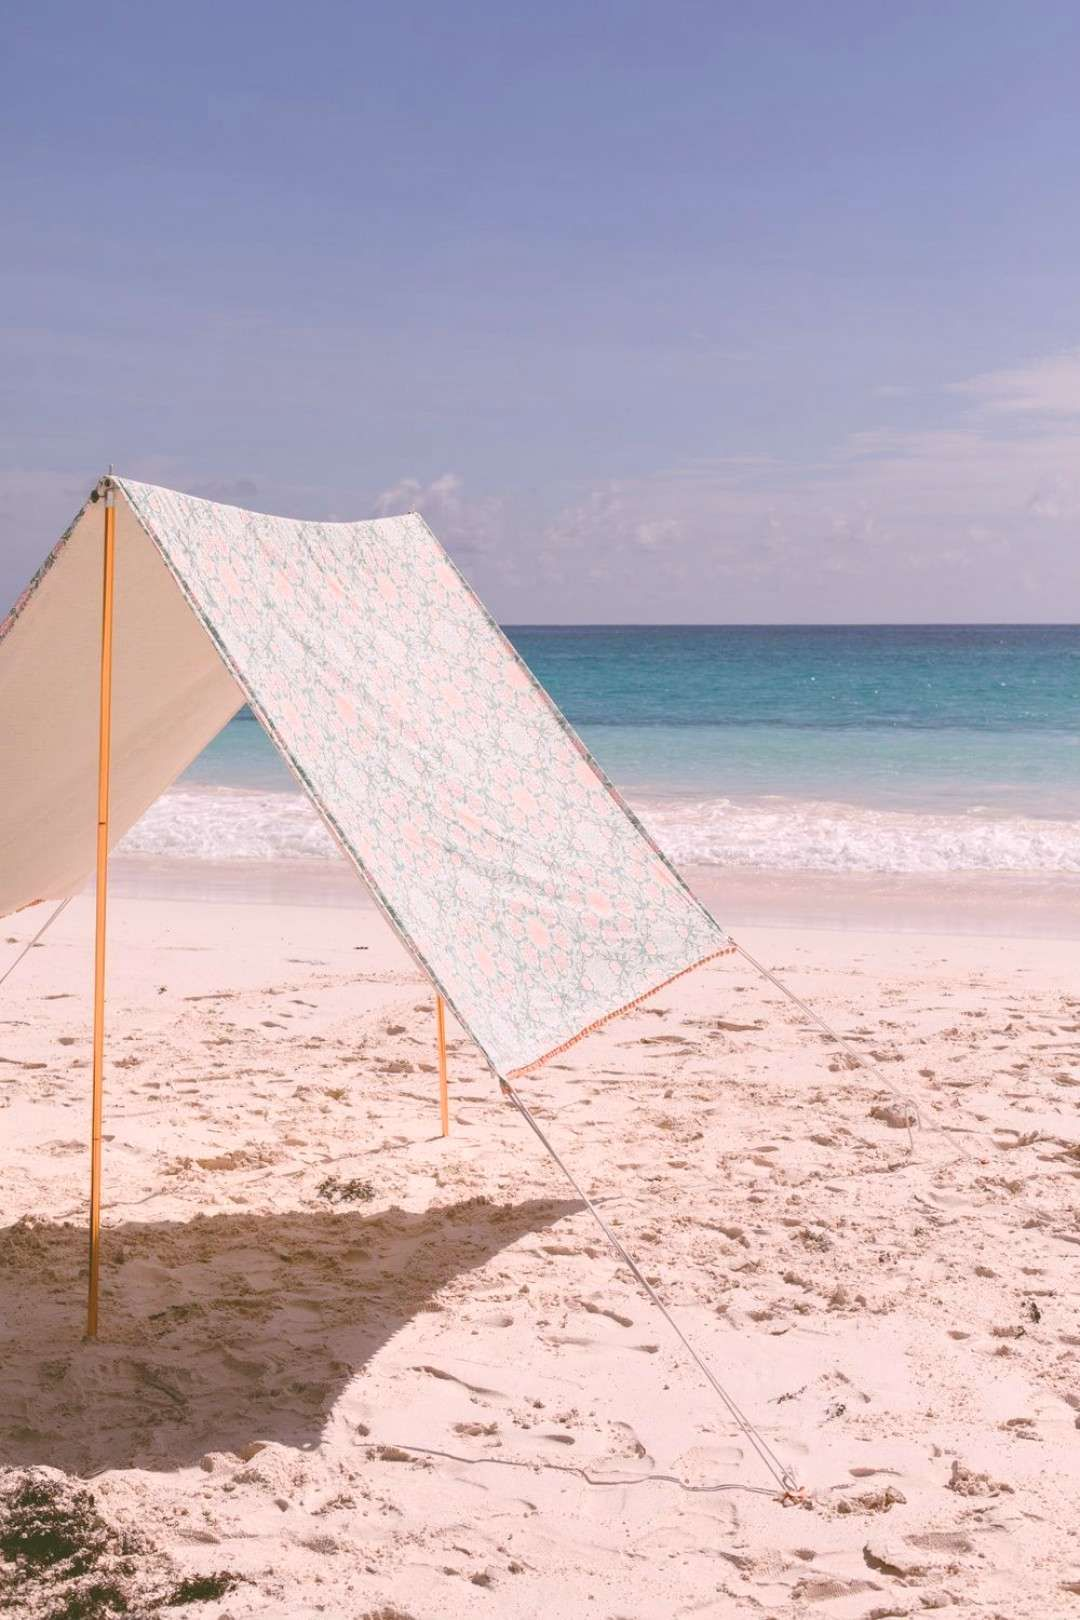 #umbrellas #throwing #mucbeach #shade #beach #today #gives #this #tent #are #diy #muc #we #on #so We are throwing shade on beach umbrellas today. This DIY beach tent give...